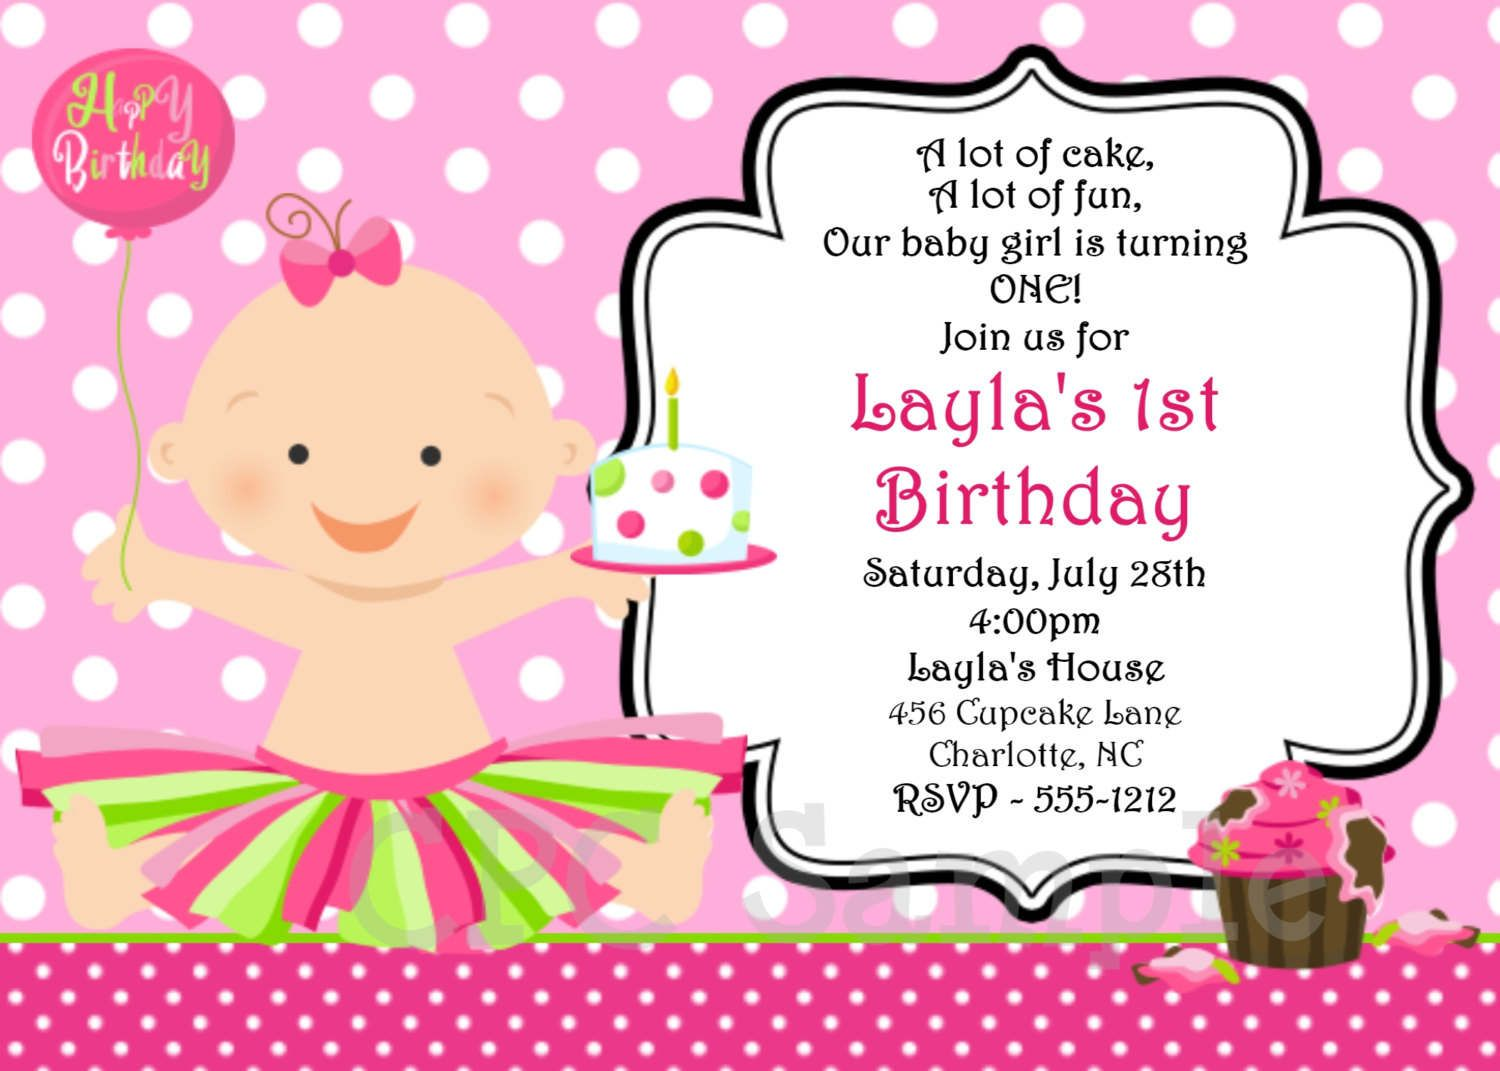 Birthday Invites Free Invitation Maker Images Downloads